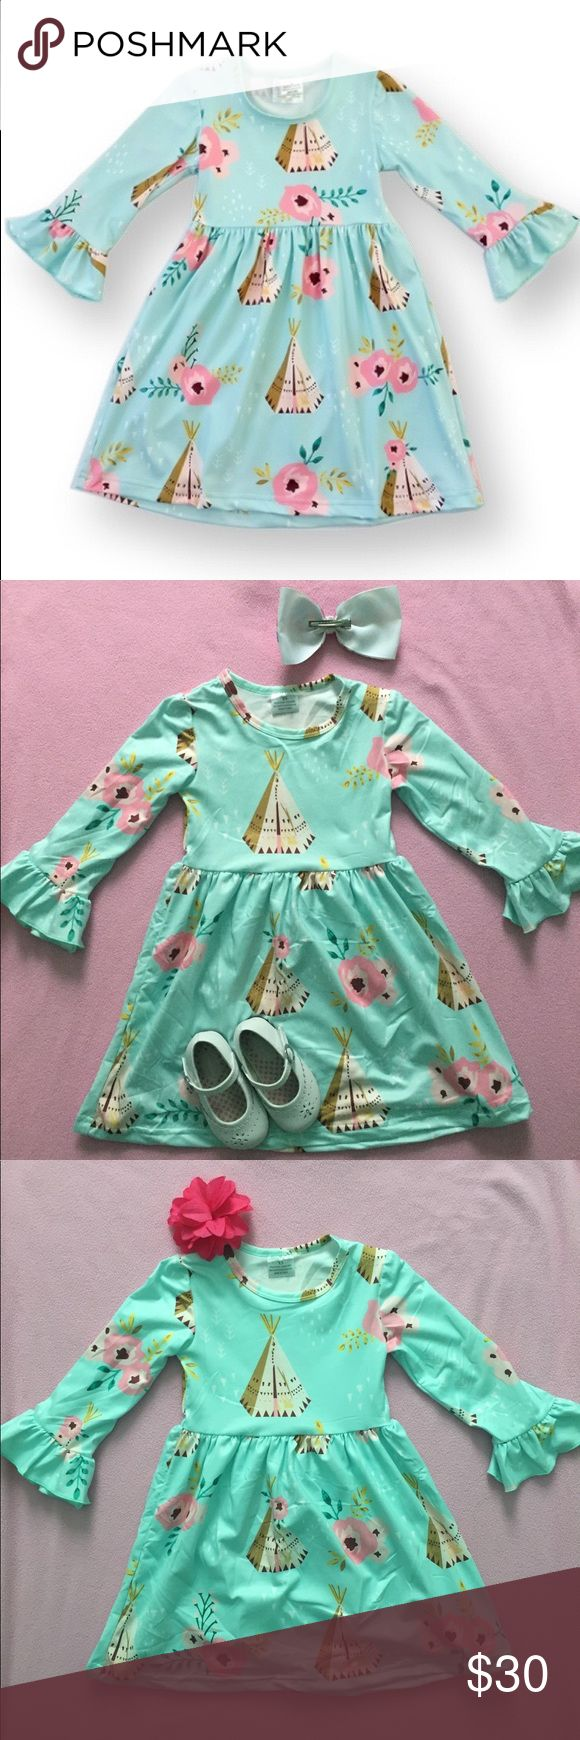 💗 Adorable! Floral Teepee dress- brand new! 💗 Brand new- looks so cute dressed up or down! Will accept reasonable offers and ship next day (except Sundays)!! Dresses Casual